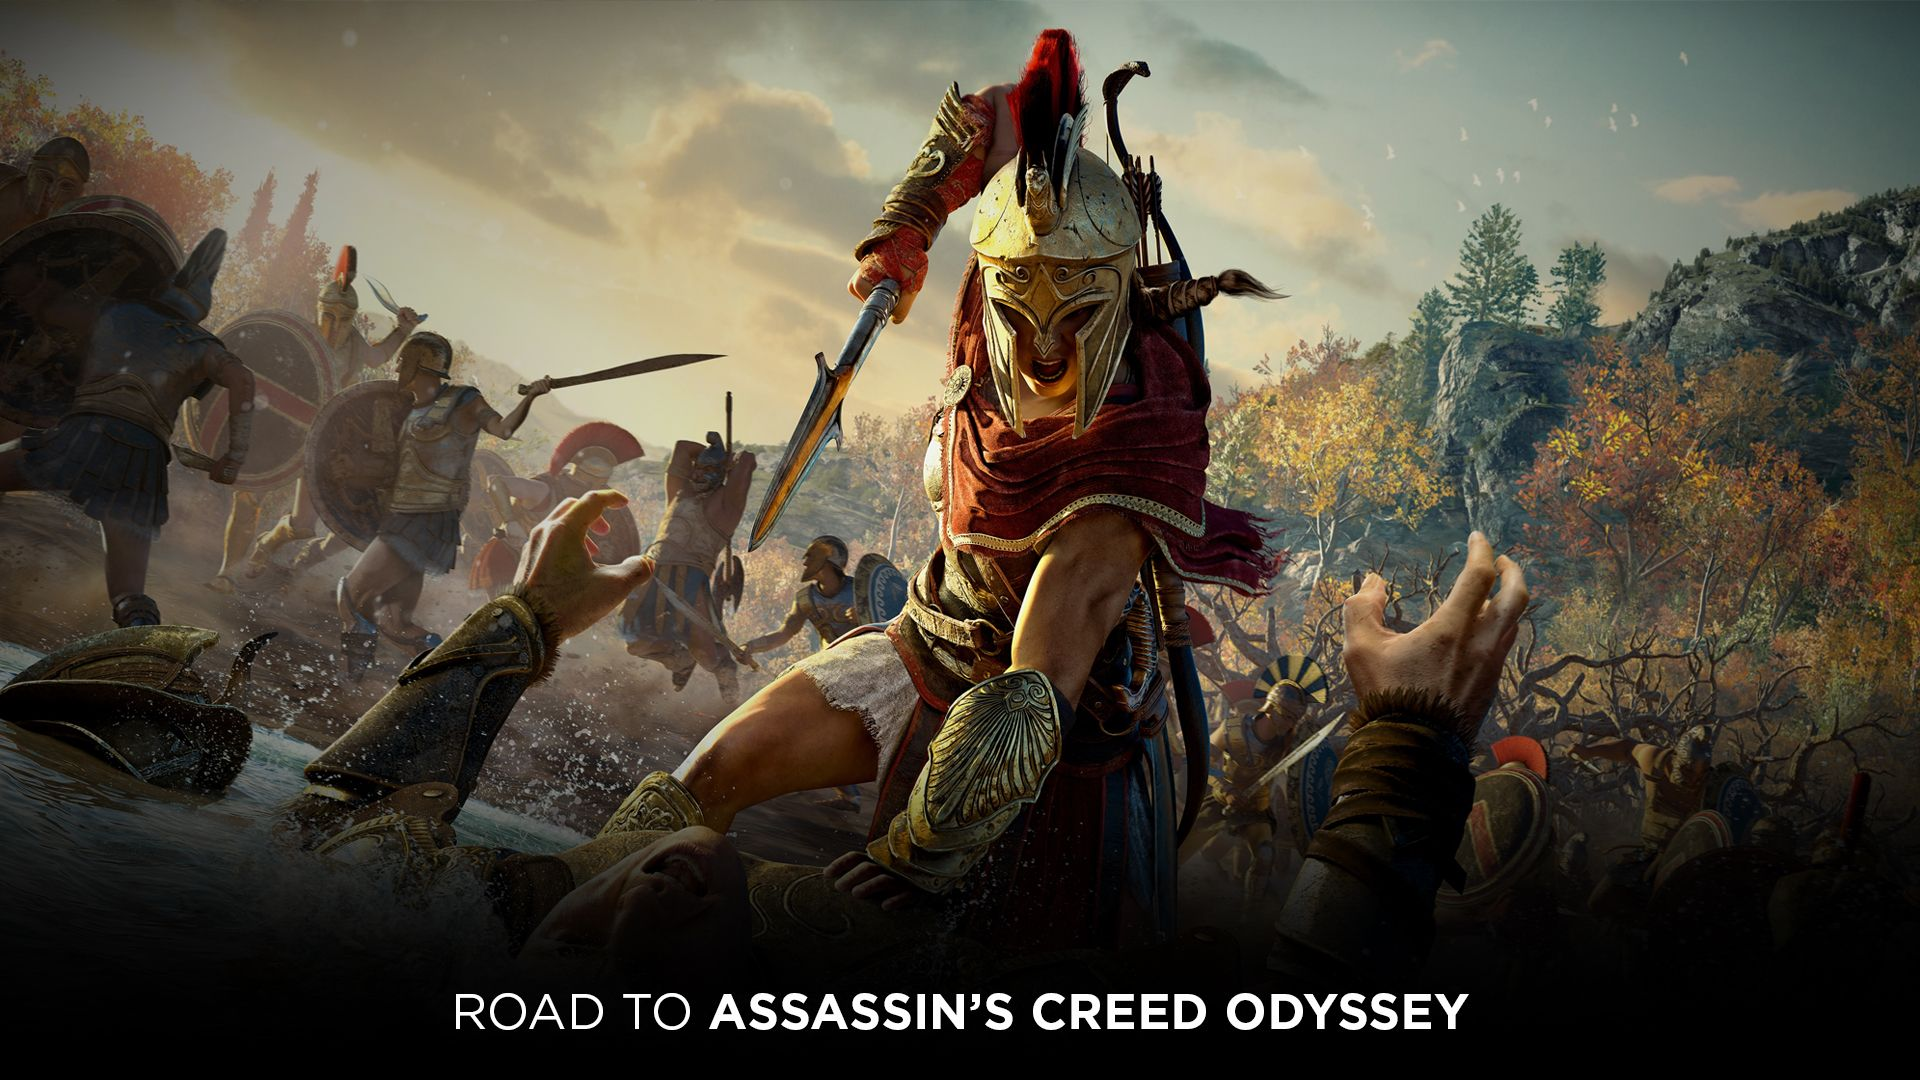 Road to Assassin's Creed Odyssey